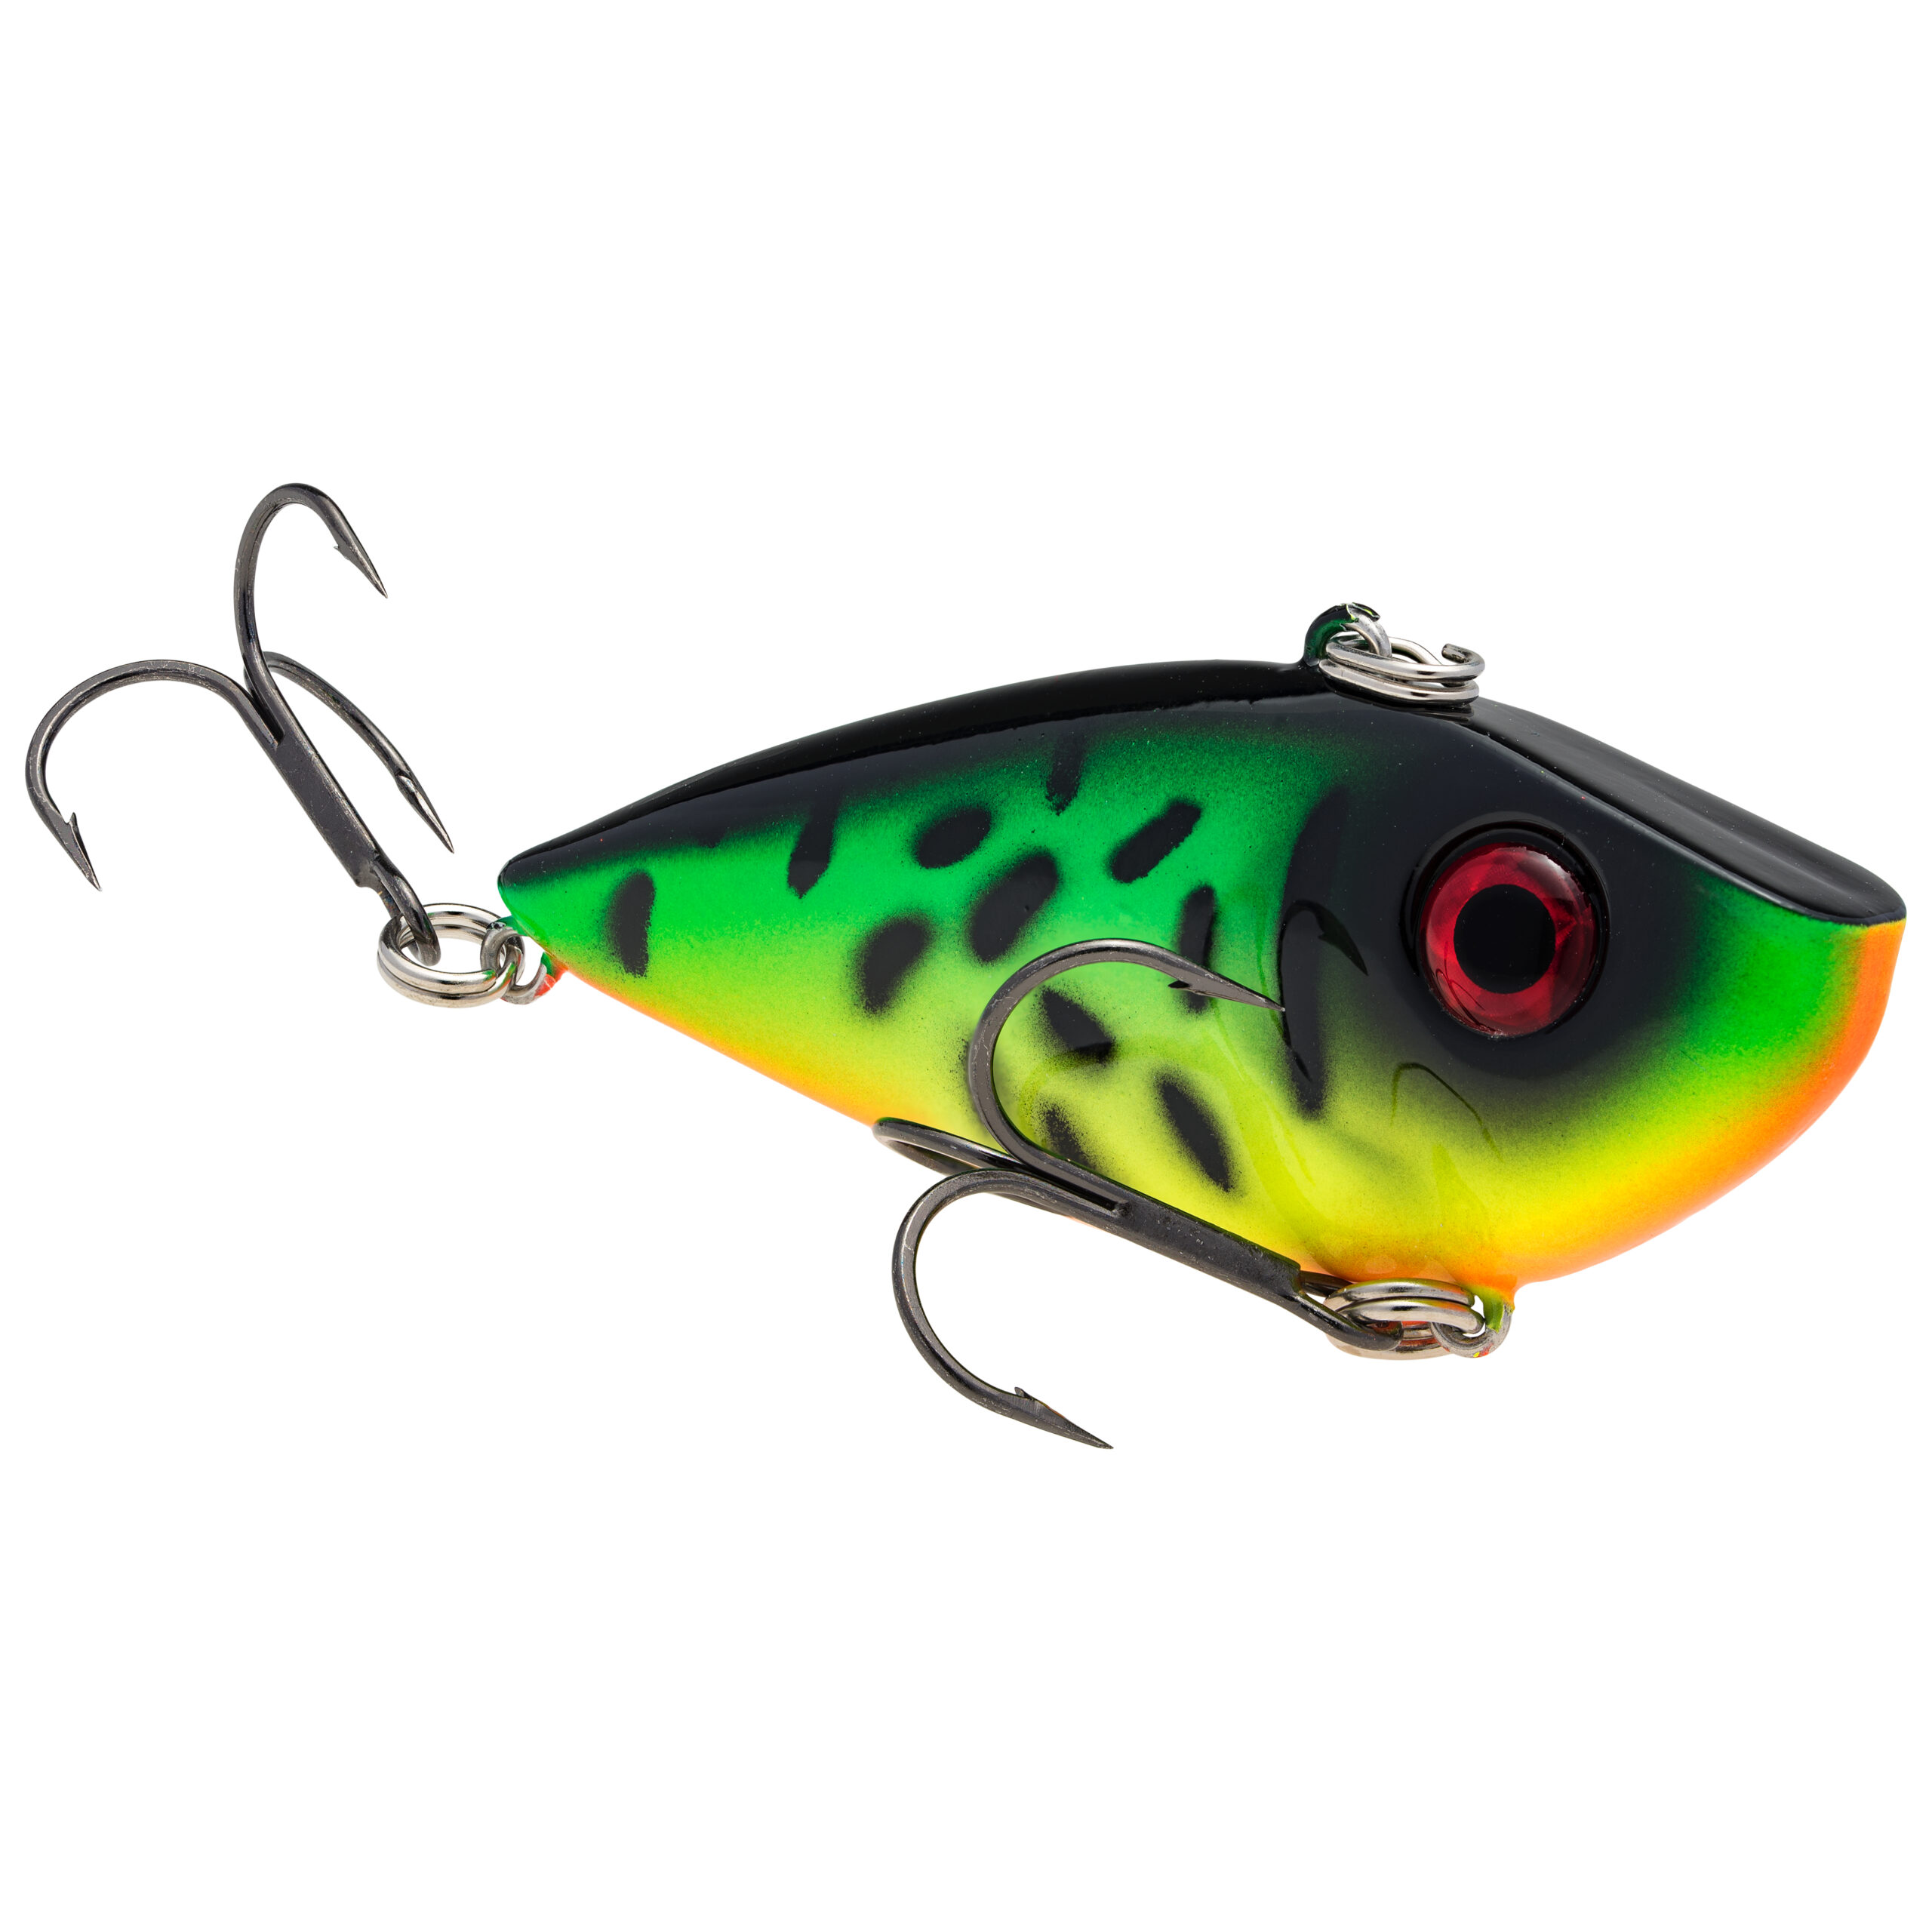 Strike King Lures – Crankbaits – Lipless Rattle Trap – Red Eyed Shad - 1/4oz - REYESD14-419 - Fire Tiger